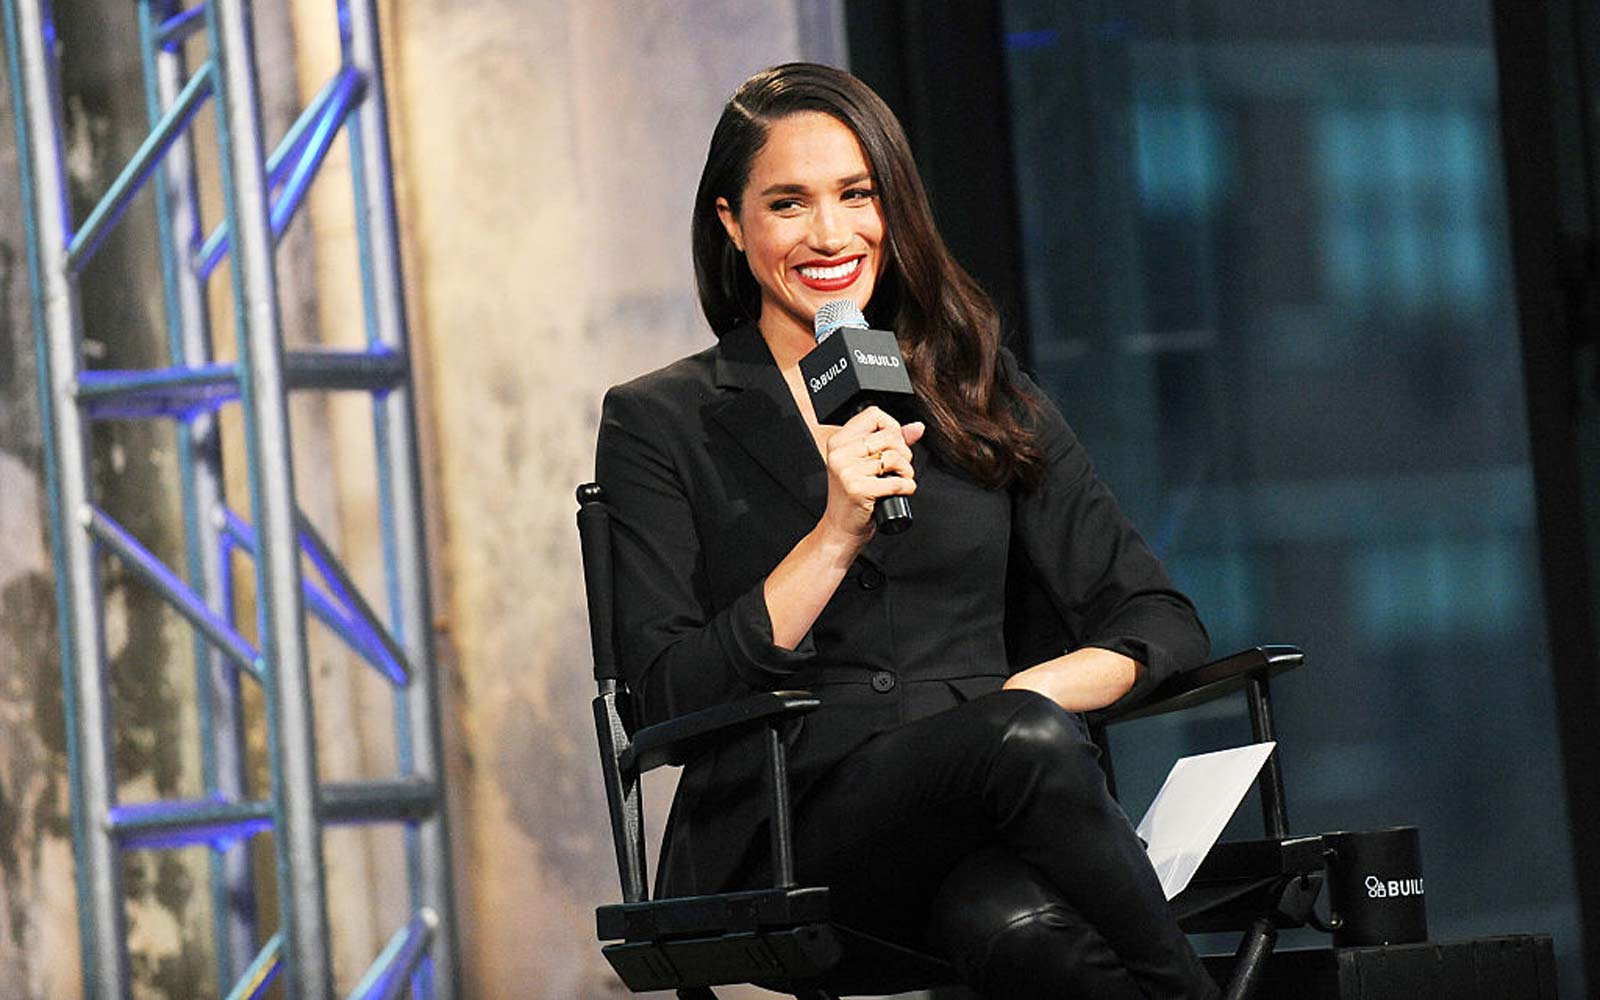 Meghan Markle Made This Life-changing Resolution the Year She Met Prince Harry